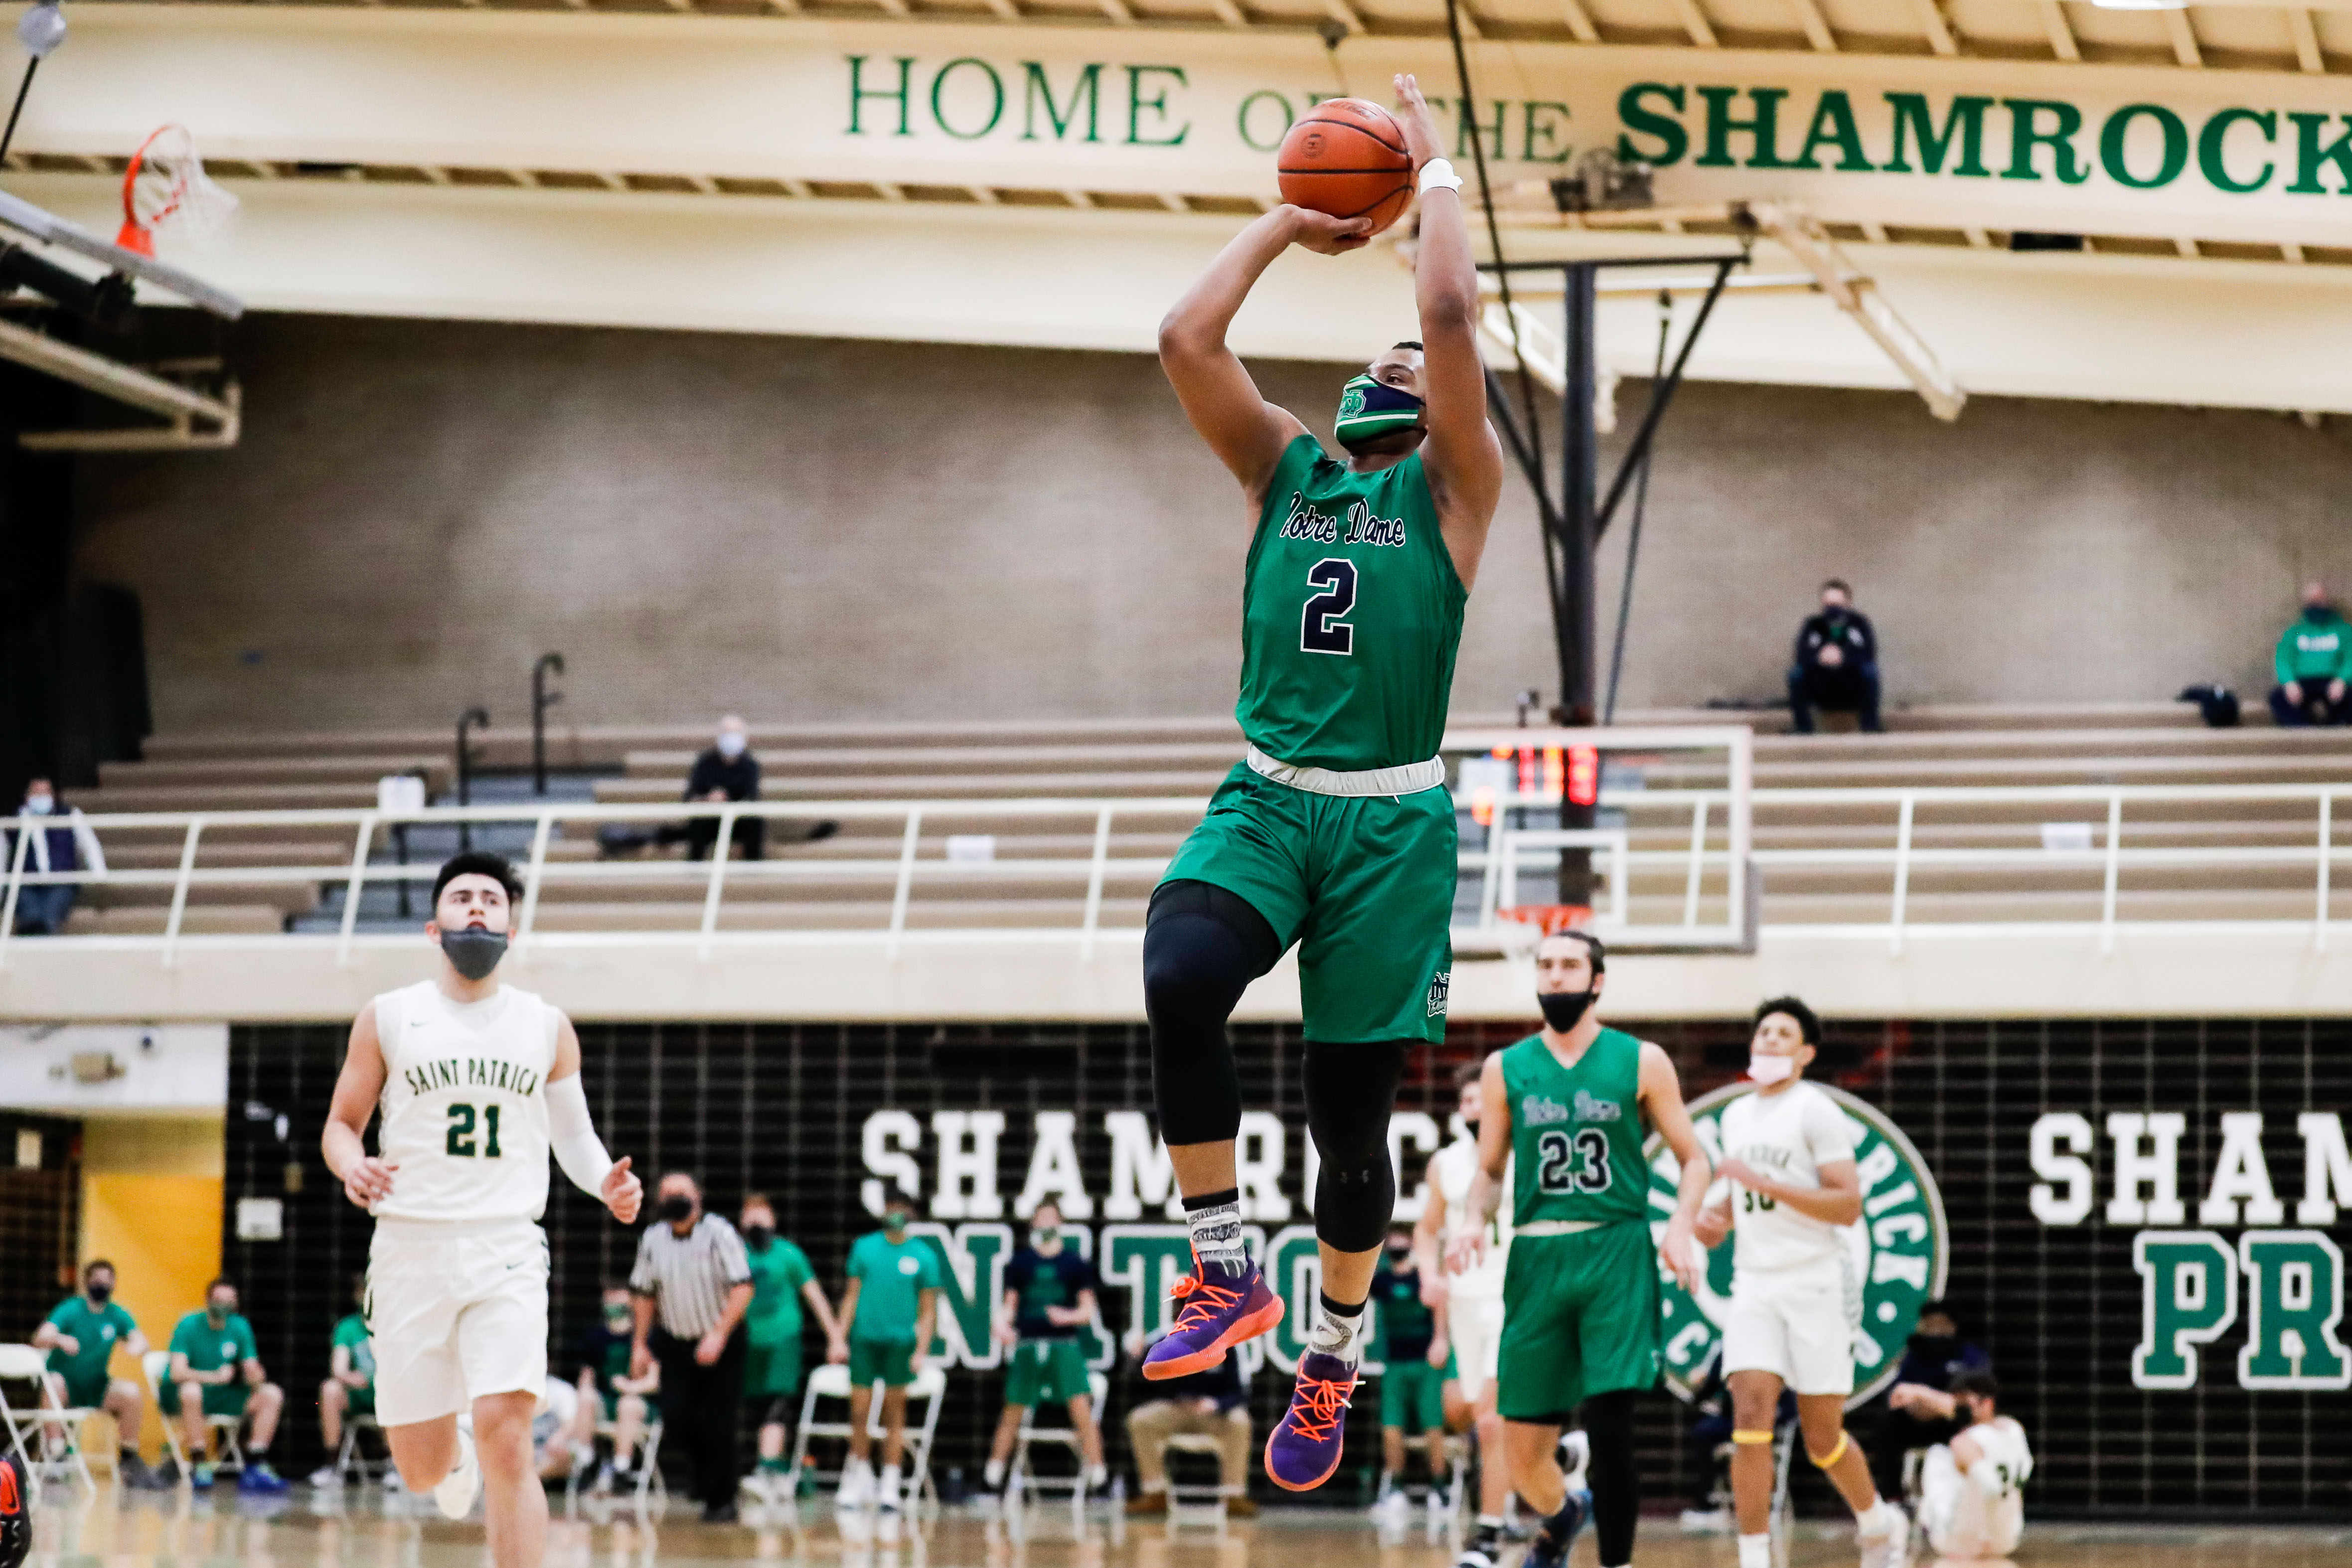 Notre Dame's Anthony Sayles (2) jumps in the air to shoot against St. Patrick.